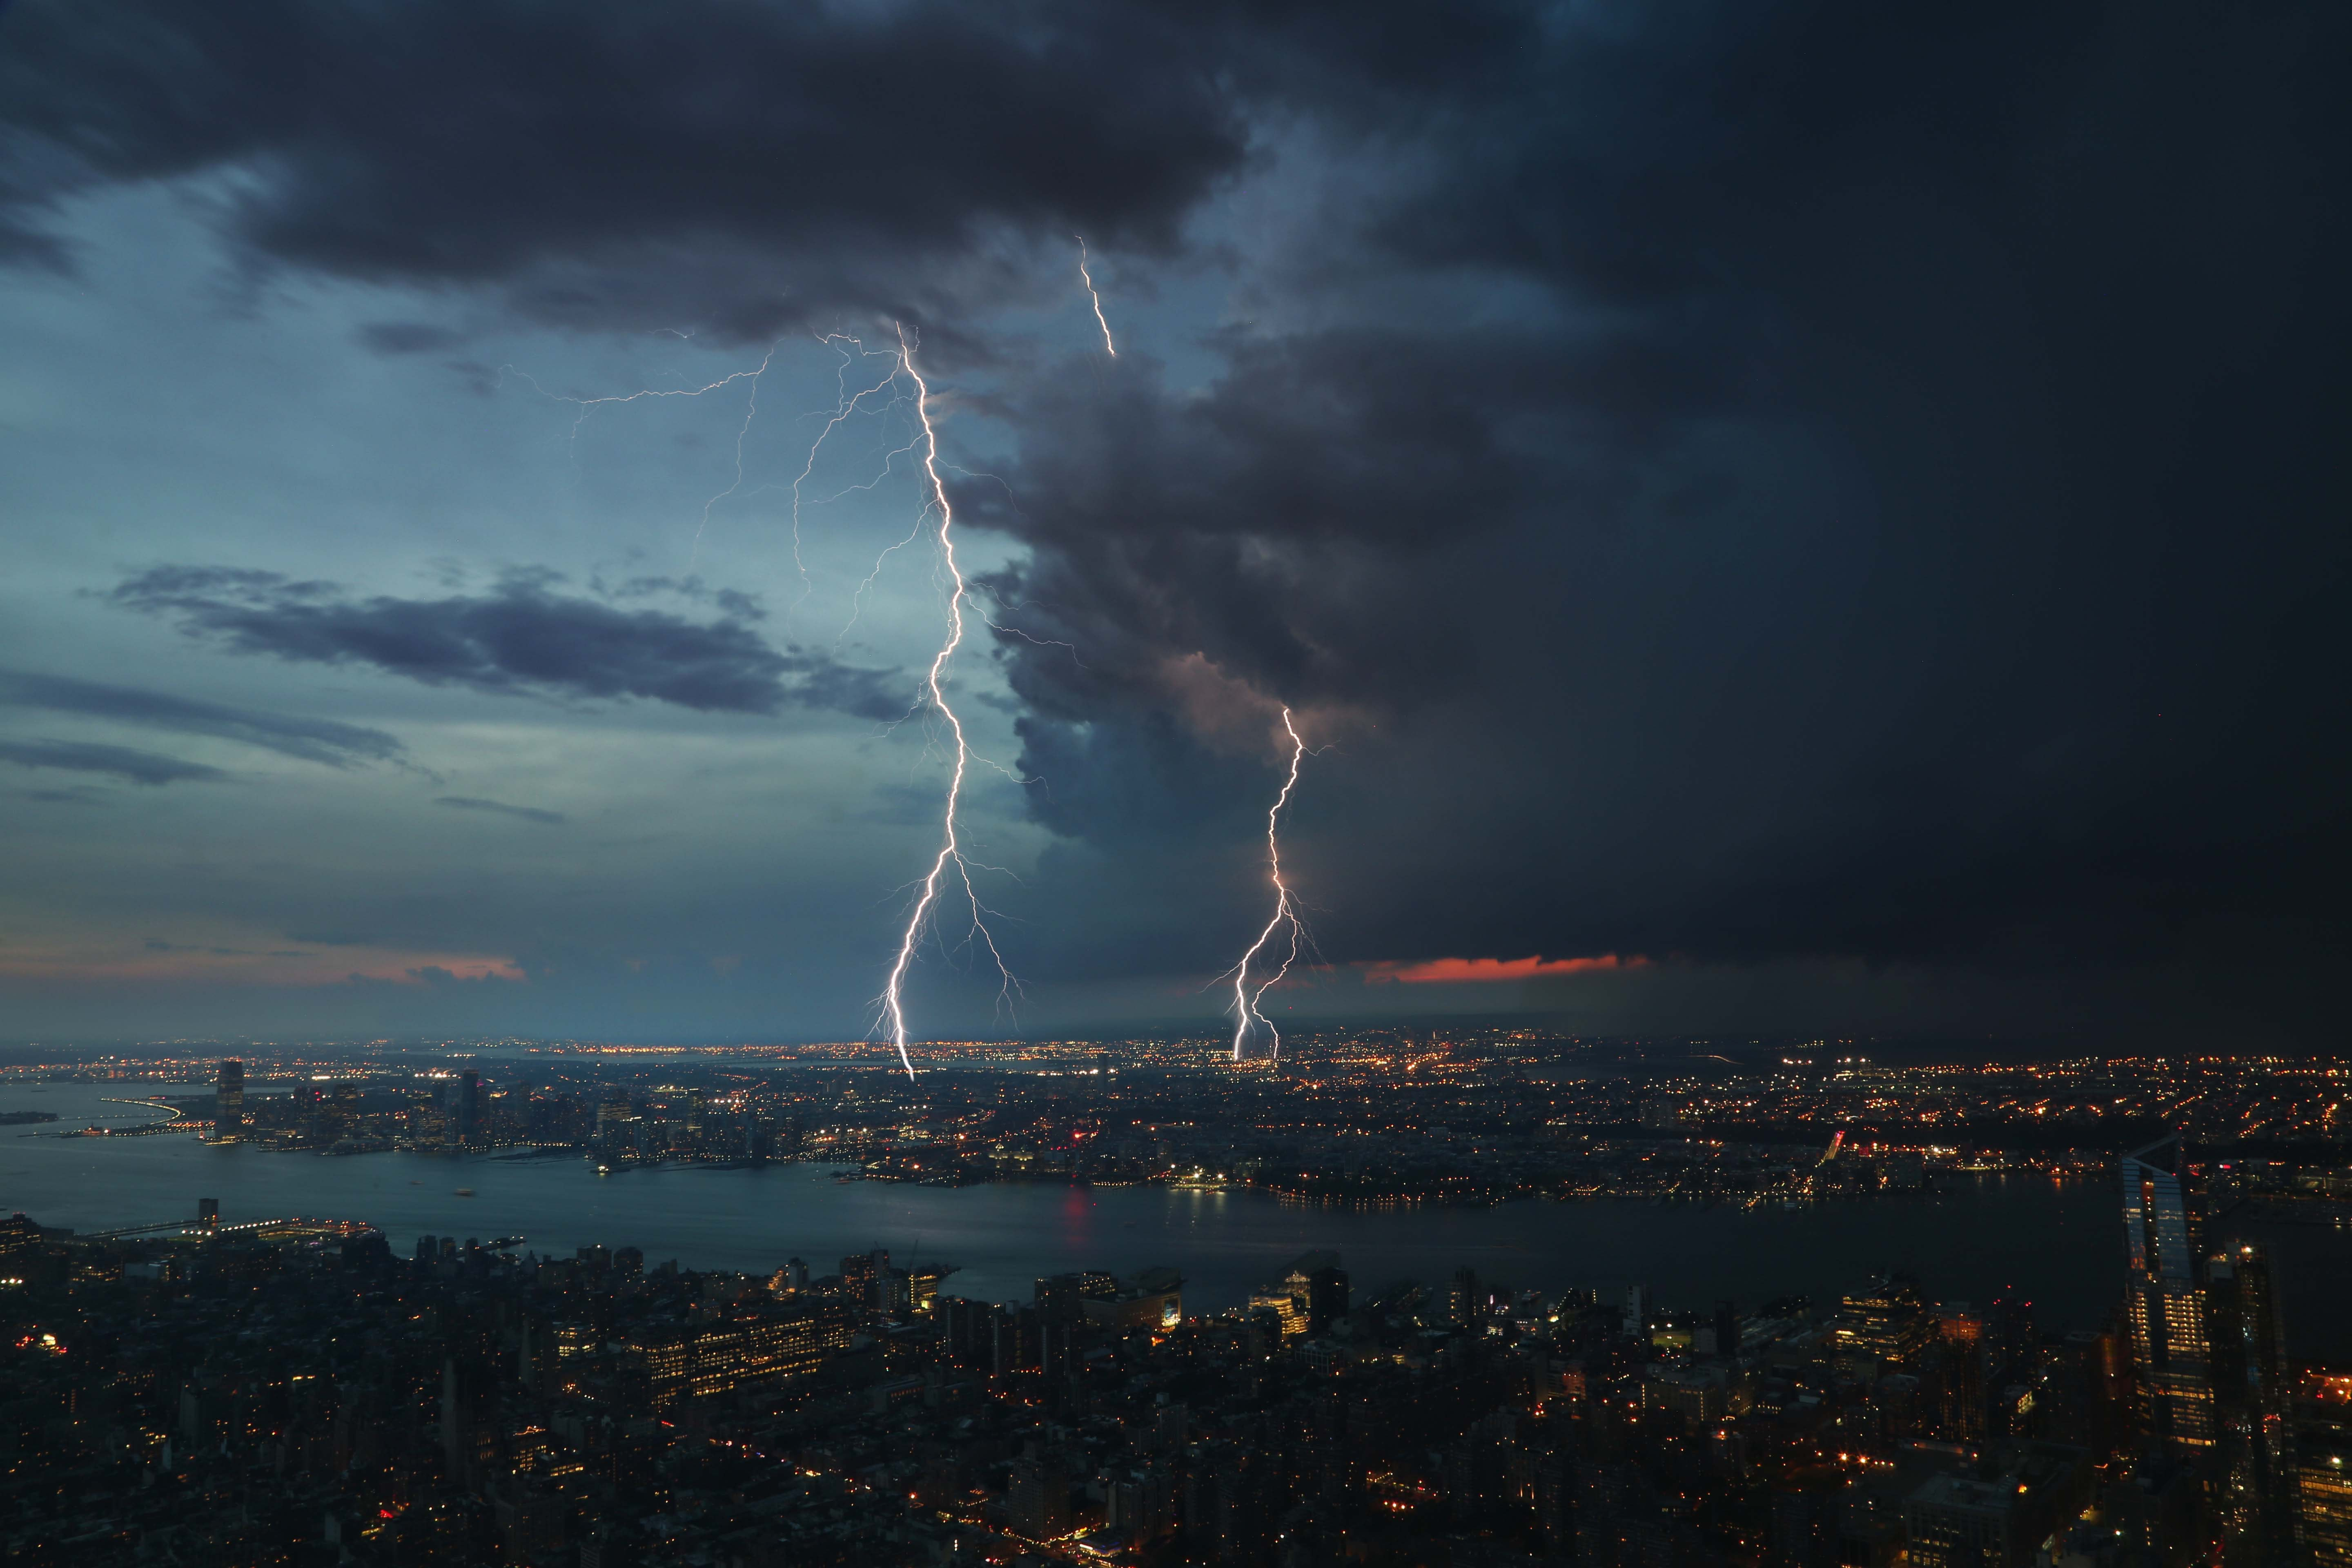 Large lightning strikes coming from the clouds into the city.